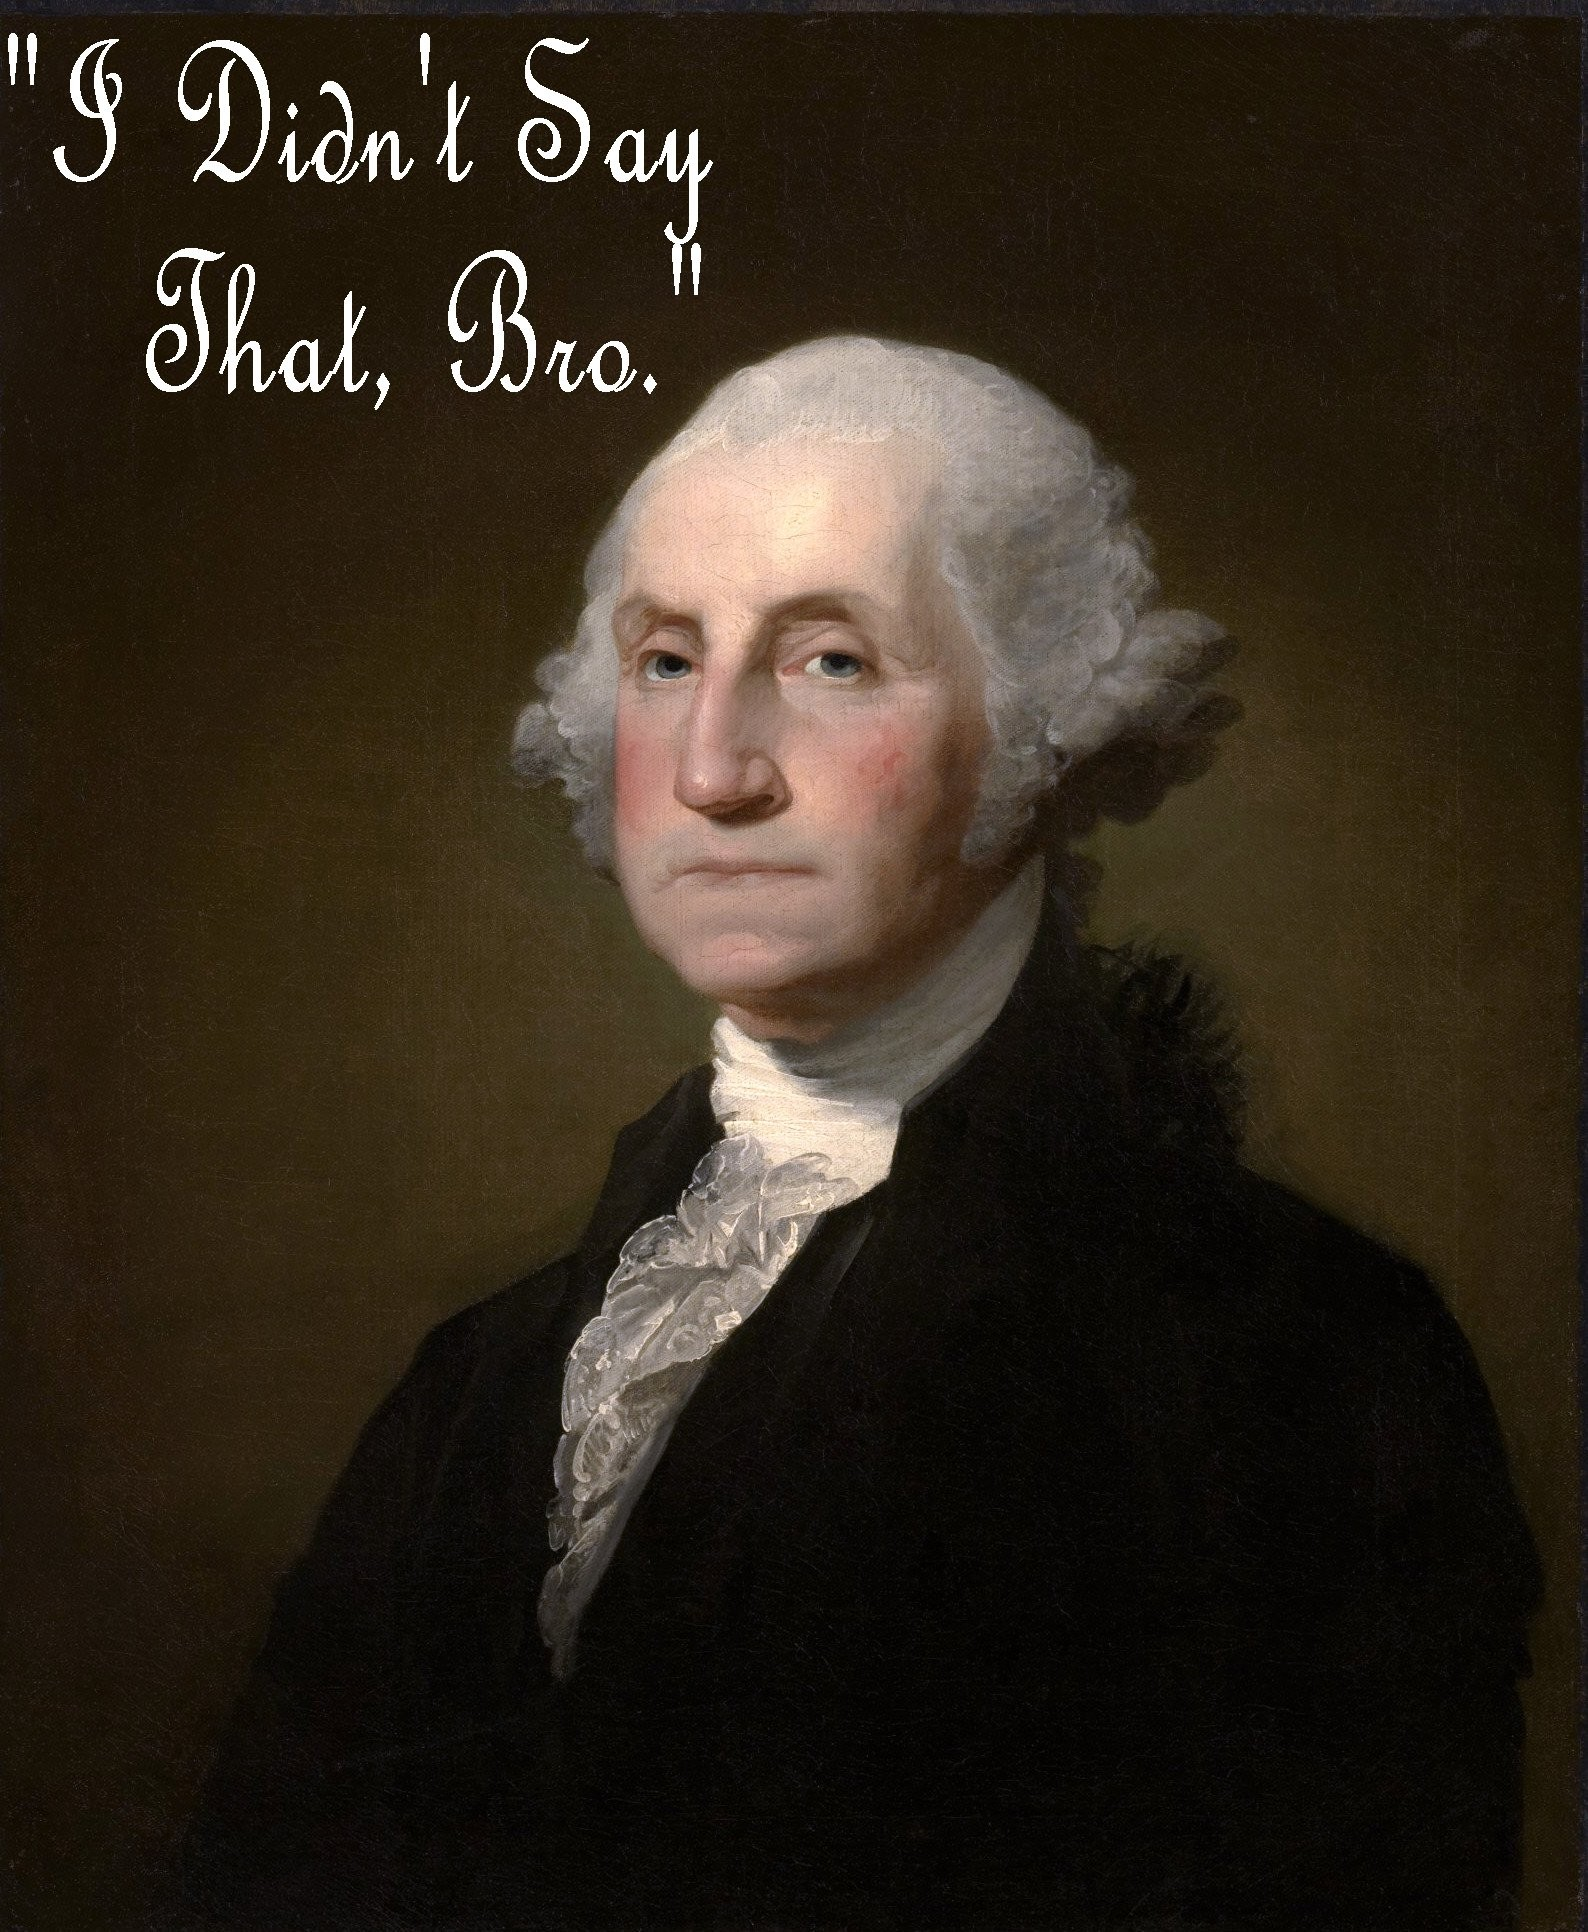 Founding Father Quotes A Repmatt Shea Bill Would Insert Fake Founding Father Quotes